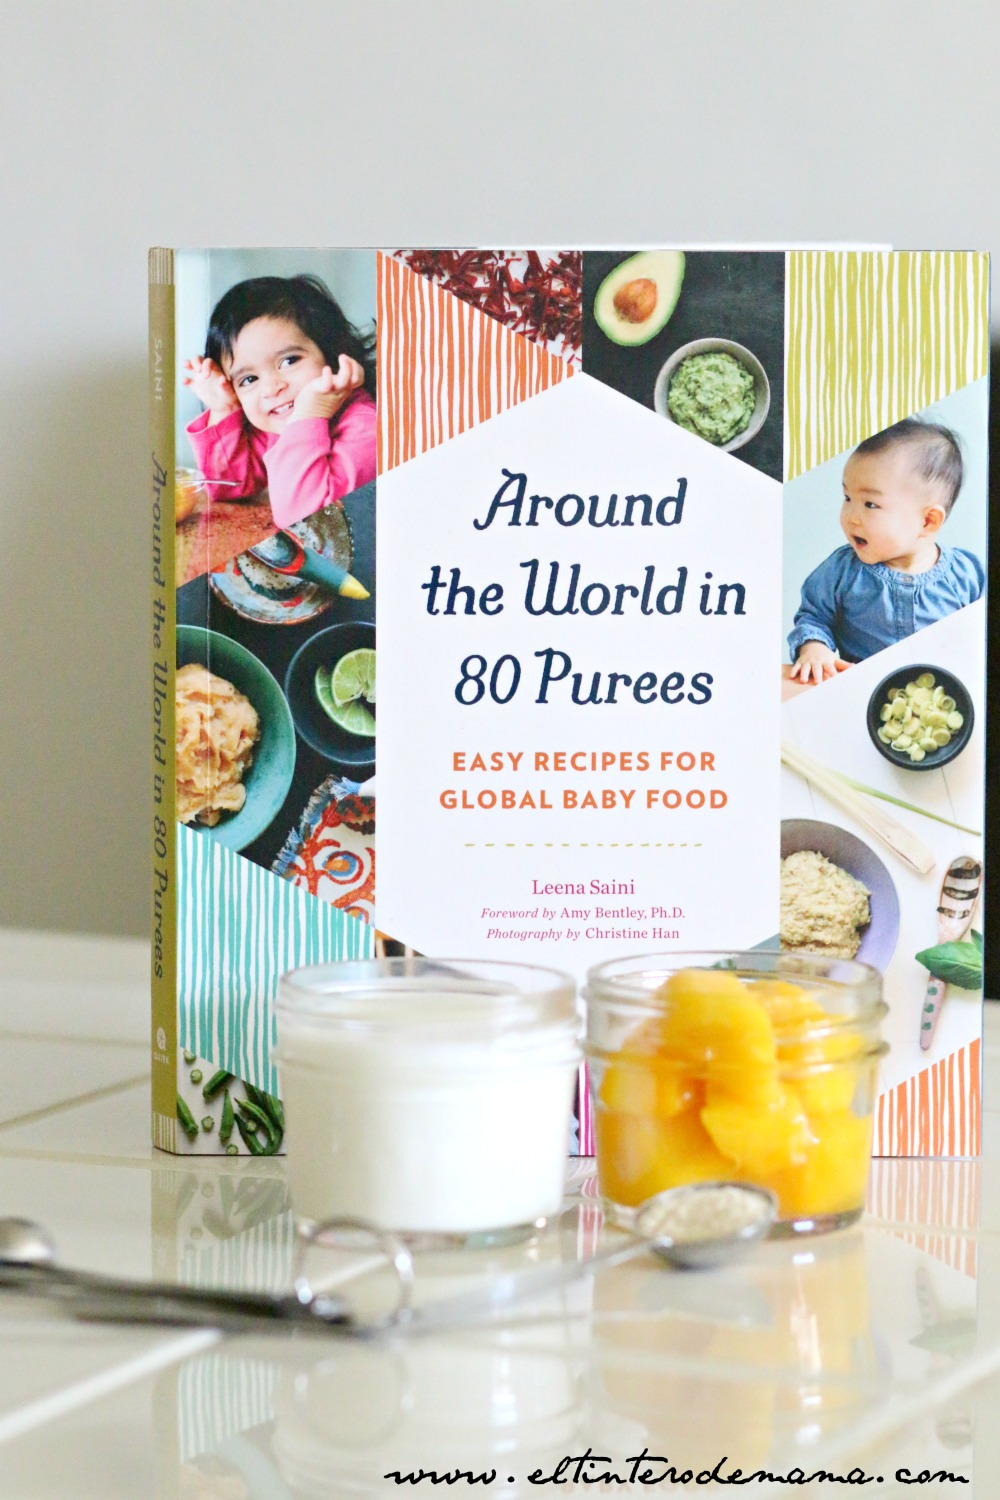 con-around-the-world-in-80-purees-haz-ricas-comidas-para-bebe